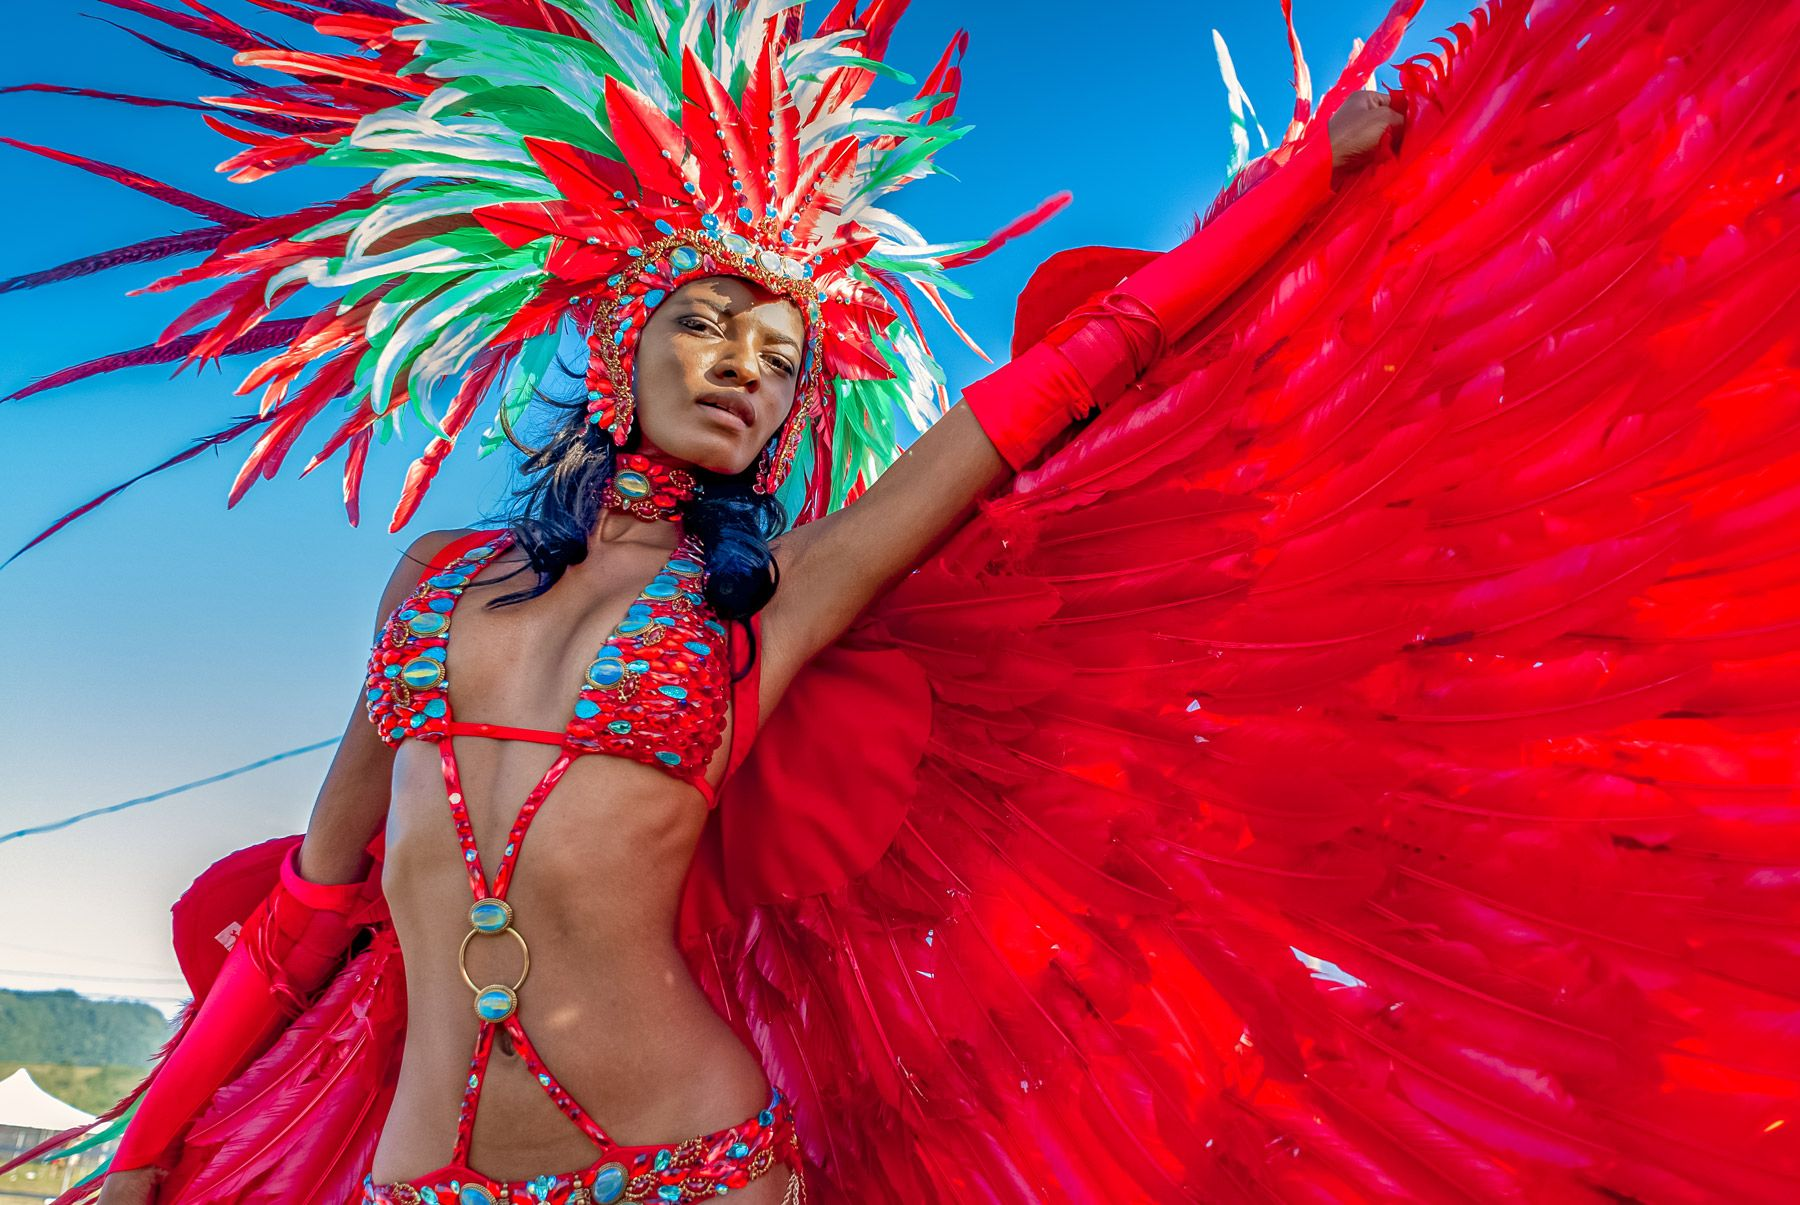 female masquerader enjoys parade